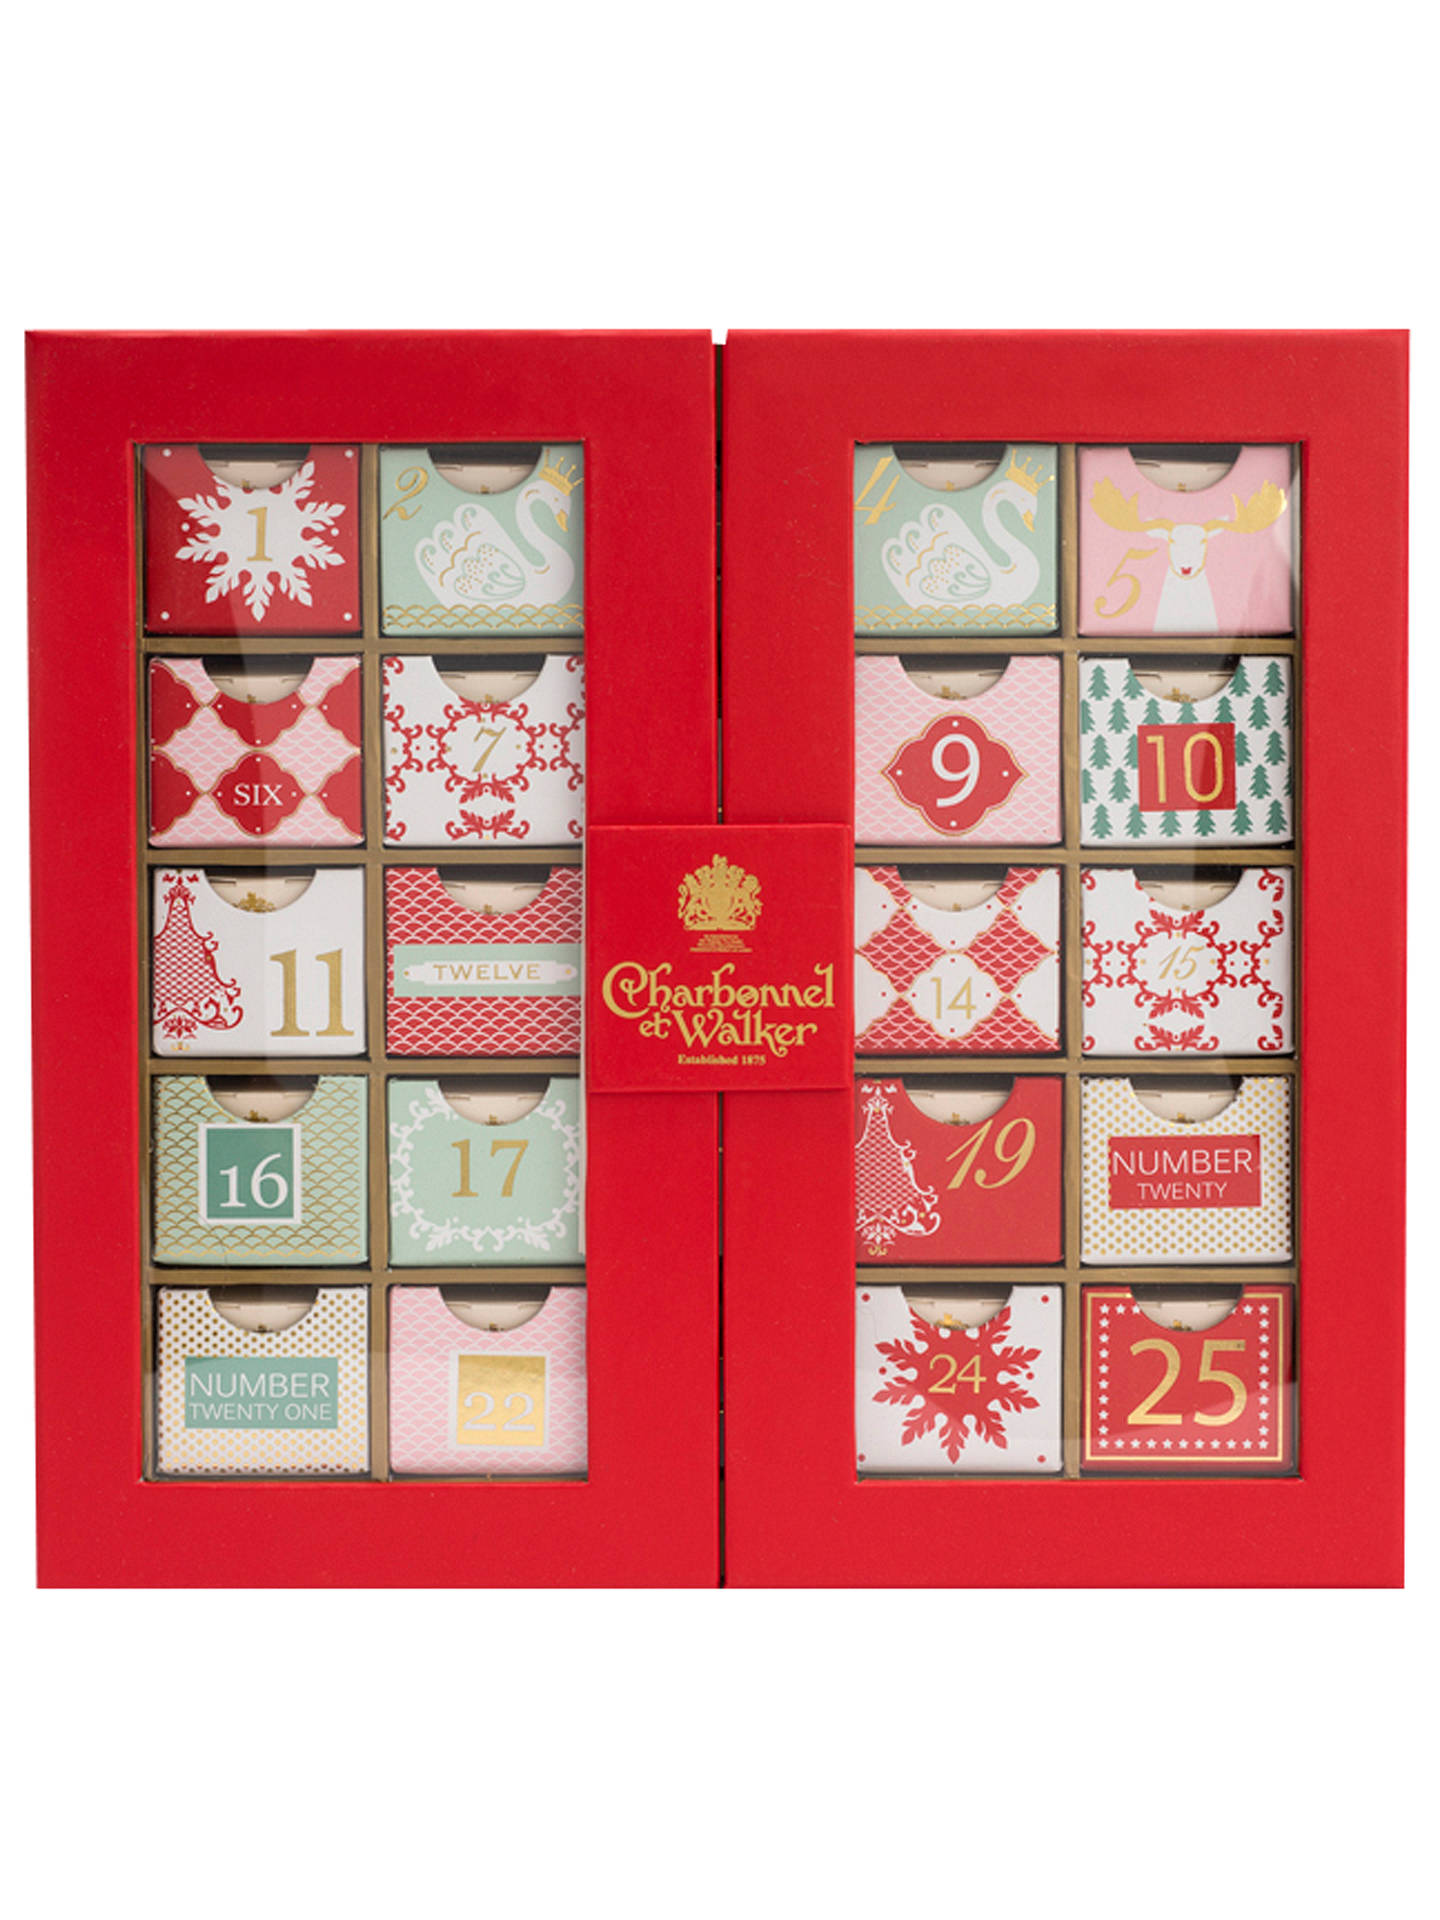 BuyCharbonnel et Walker Chocolate Advent Calendar, 310g Online at johnlewis.com